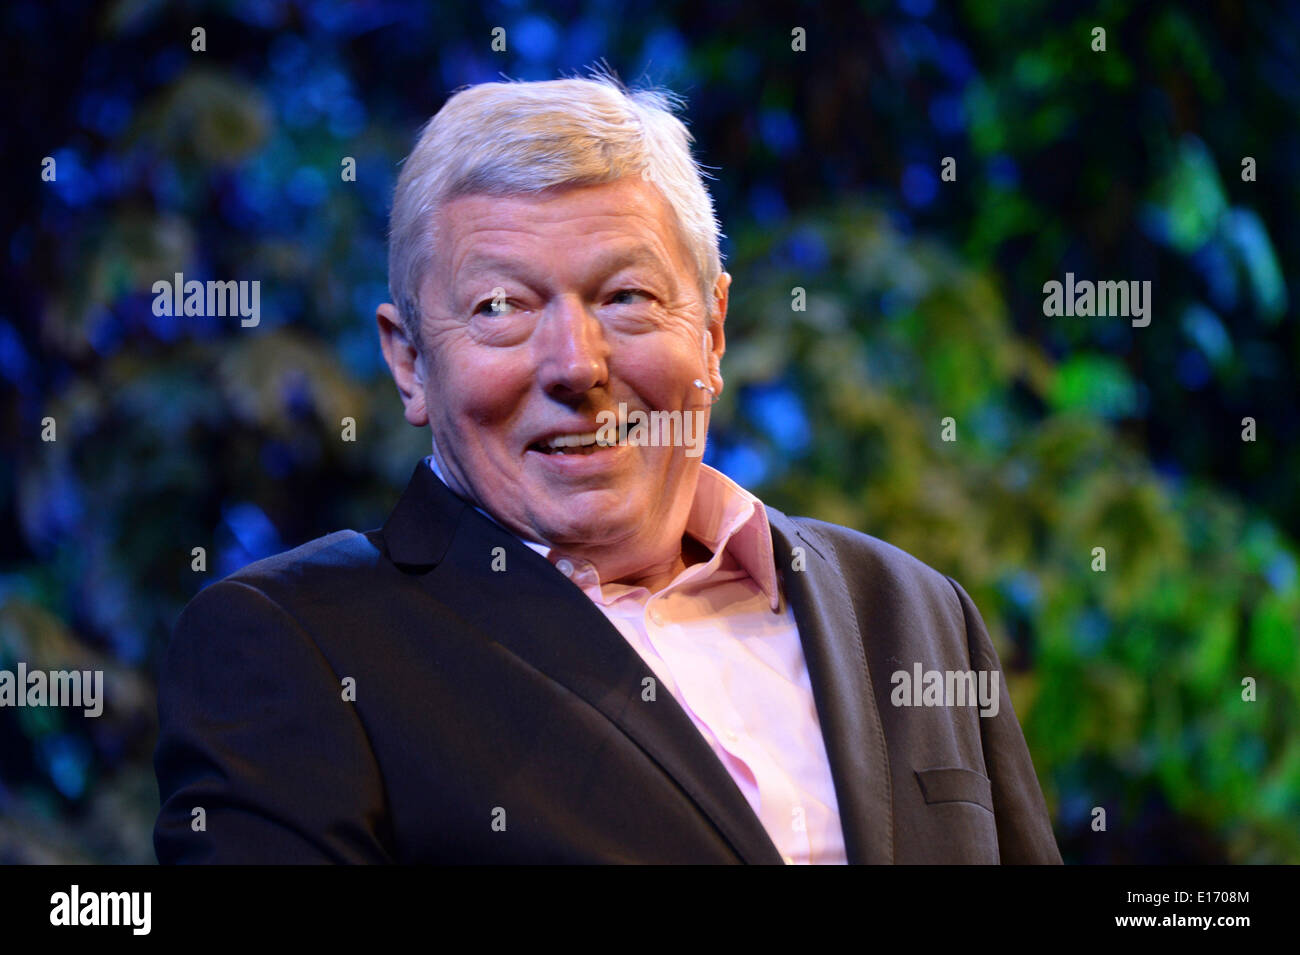 Hay on Wye, Wales UK. Sunday 25 May 2014. Former Labour cabinet member, and Orwell Prize winning author, ALAN JOHNSON on the fourth day of the 2014 Daily Telegraph Hay Literature Festival, Wales UK photo Credit: keith morris/Alamy Live News - Stock Image